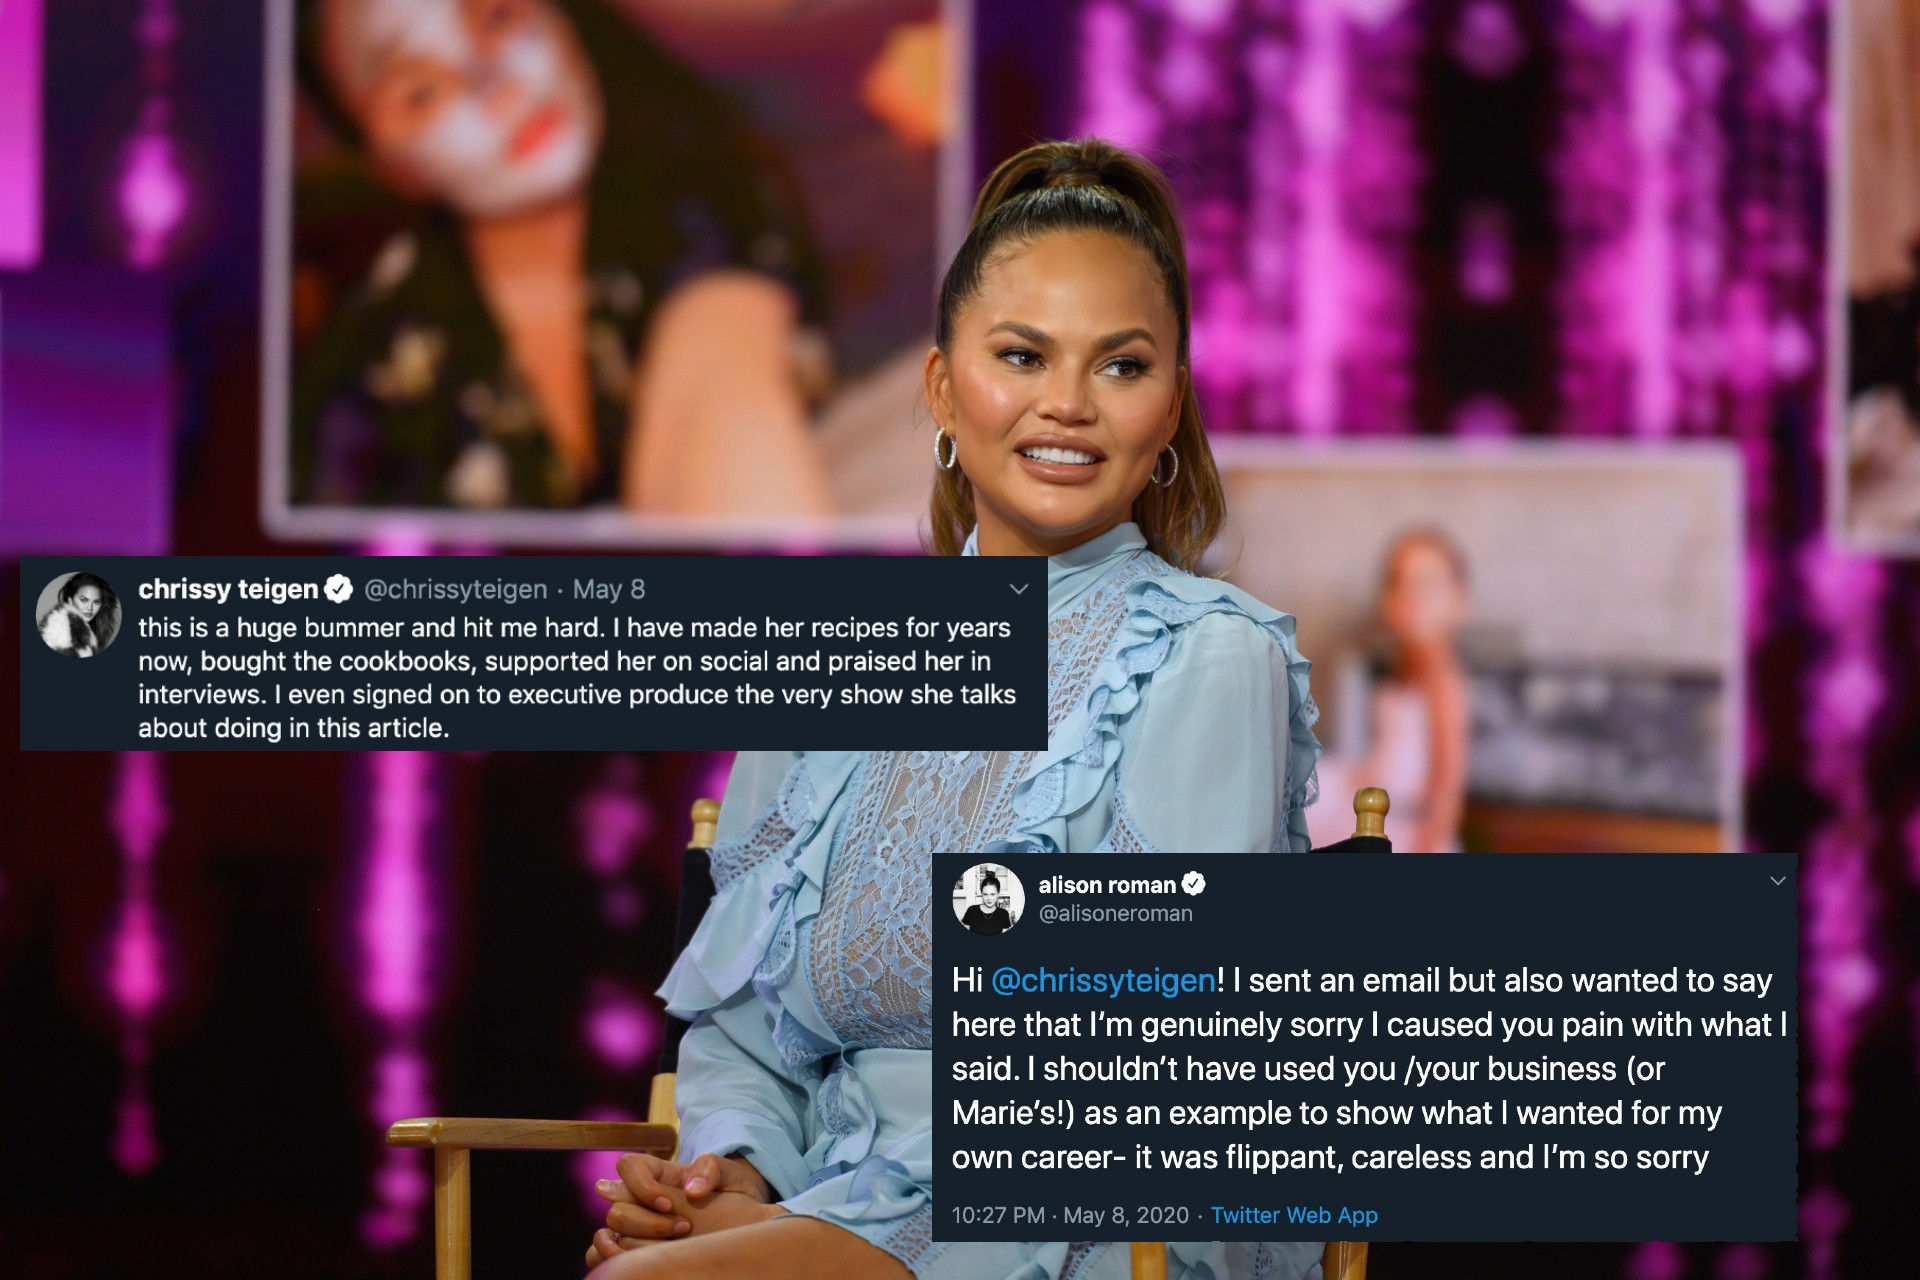 Chrissy Teigen, wearing a light blue dress and her hair in a high ponytail, sits on a folding chair onstage in front of a shiny purple backdrop.